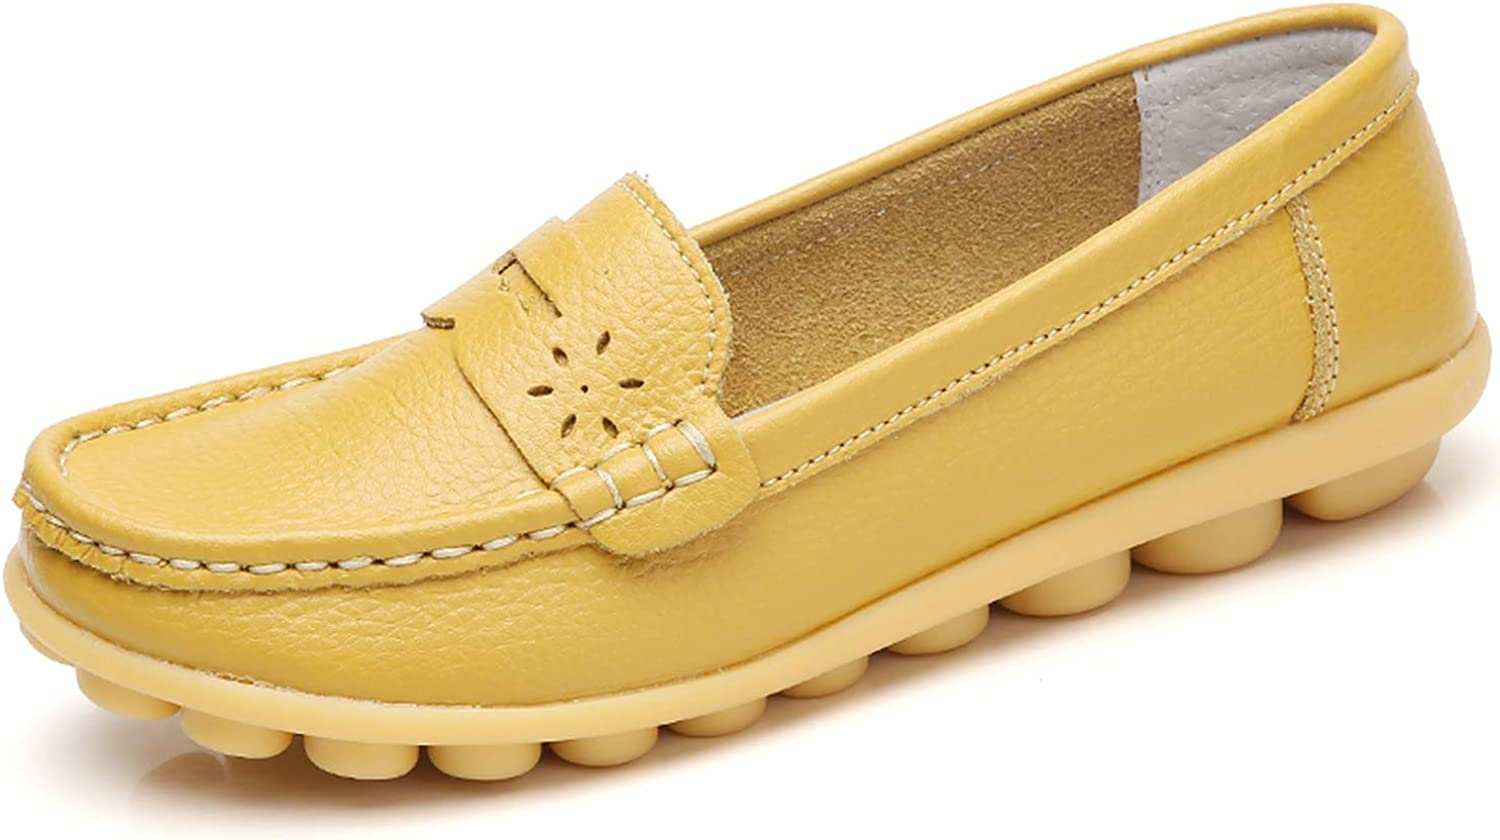 Be fearless 2019 Women Flats Casual Leather shoes Woman shoes Soft Slip On Flat shoes Solid Women's Loafers